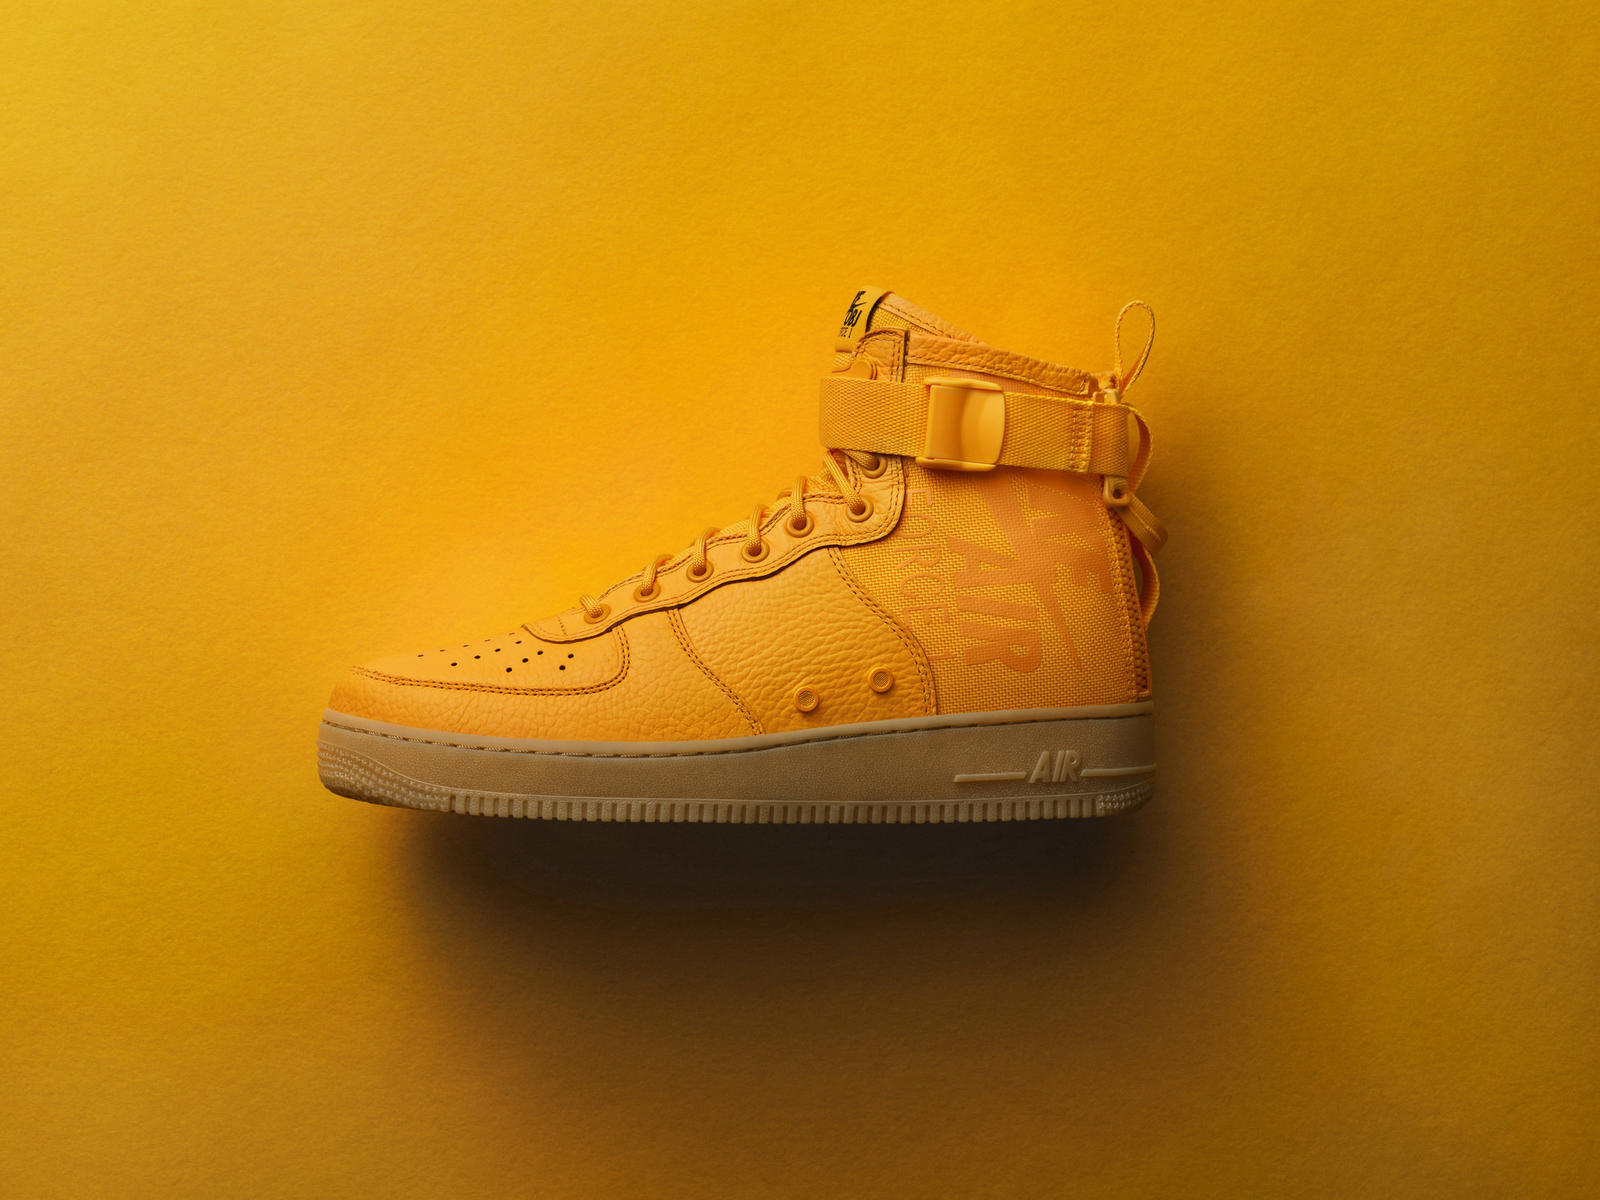 OBJs debut signature lifestyle shoe, the SF AF-1 Mid